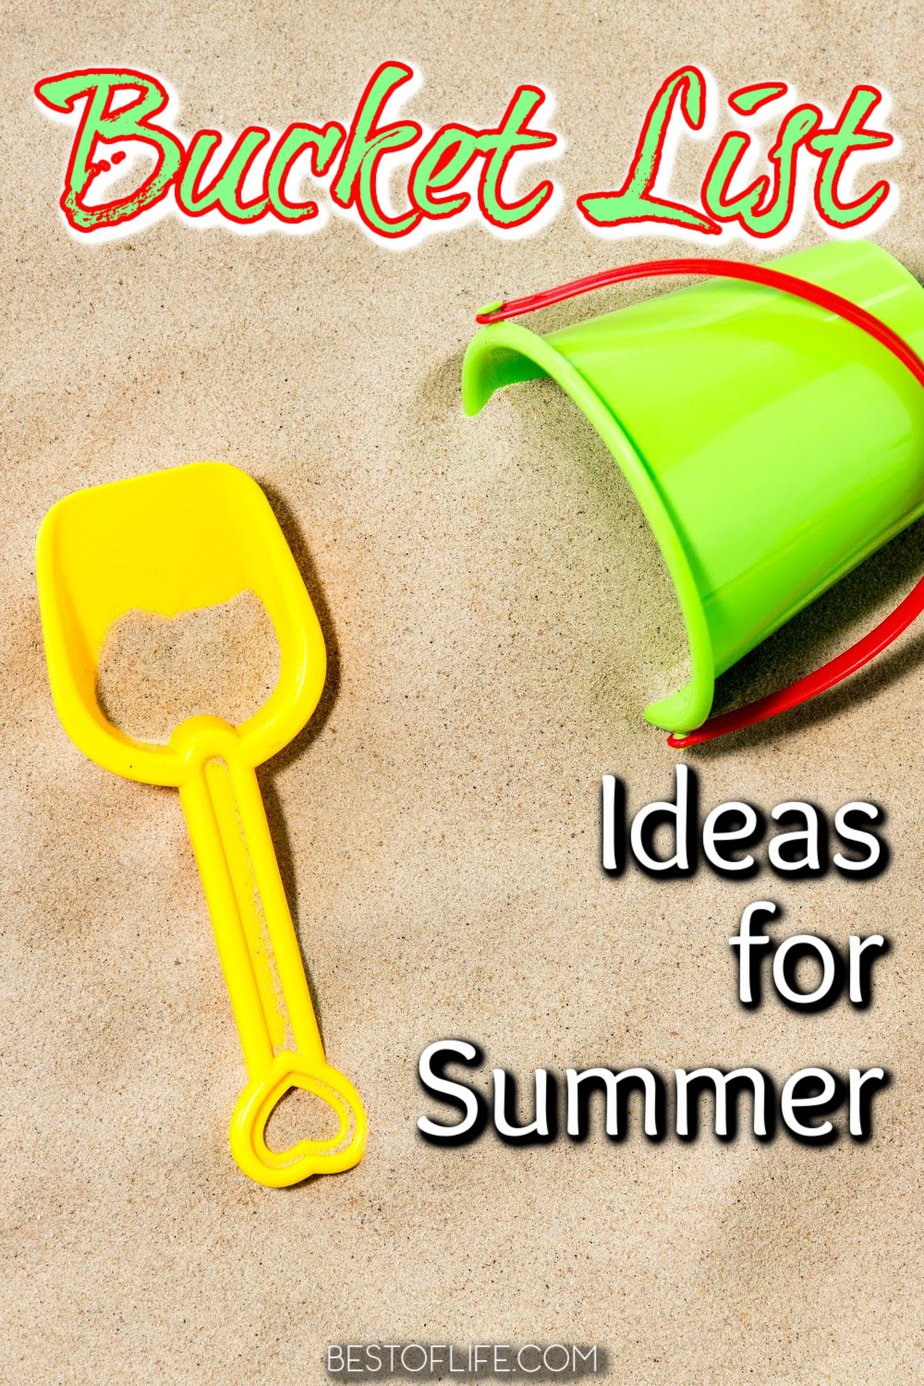 No more waking up to make lunches and yelling at the kids to get out the door. Make the most of summer with our best summer bucket list ideas! Bucket List Ideas Before I Die | Teen Bucket List Ideas | Bucket List Life | Things to do in Summer | Summer Activity Ideas | Bucket List for Summer | Vacation Ideas for Adults | Things to do in Summer #summer #activities via @thebestoflife